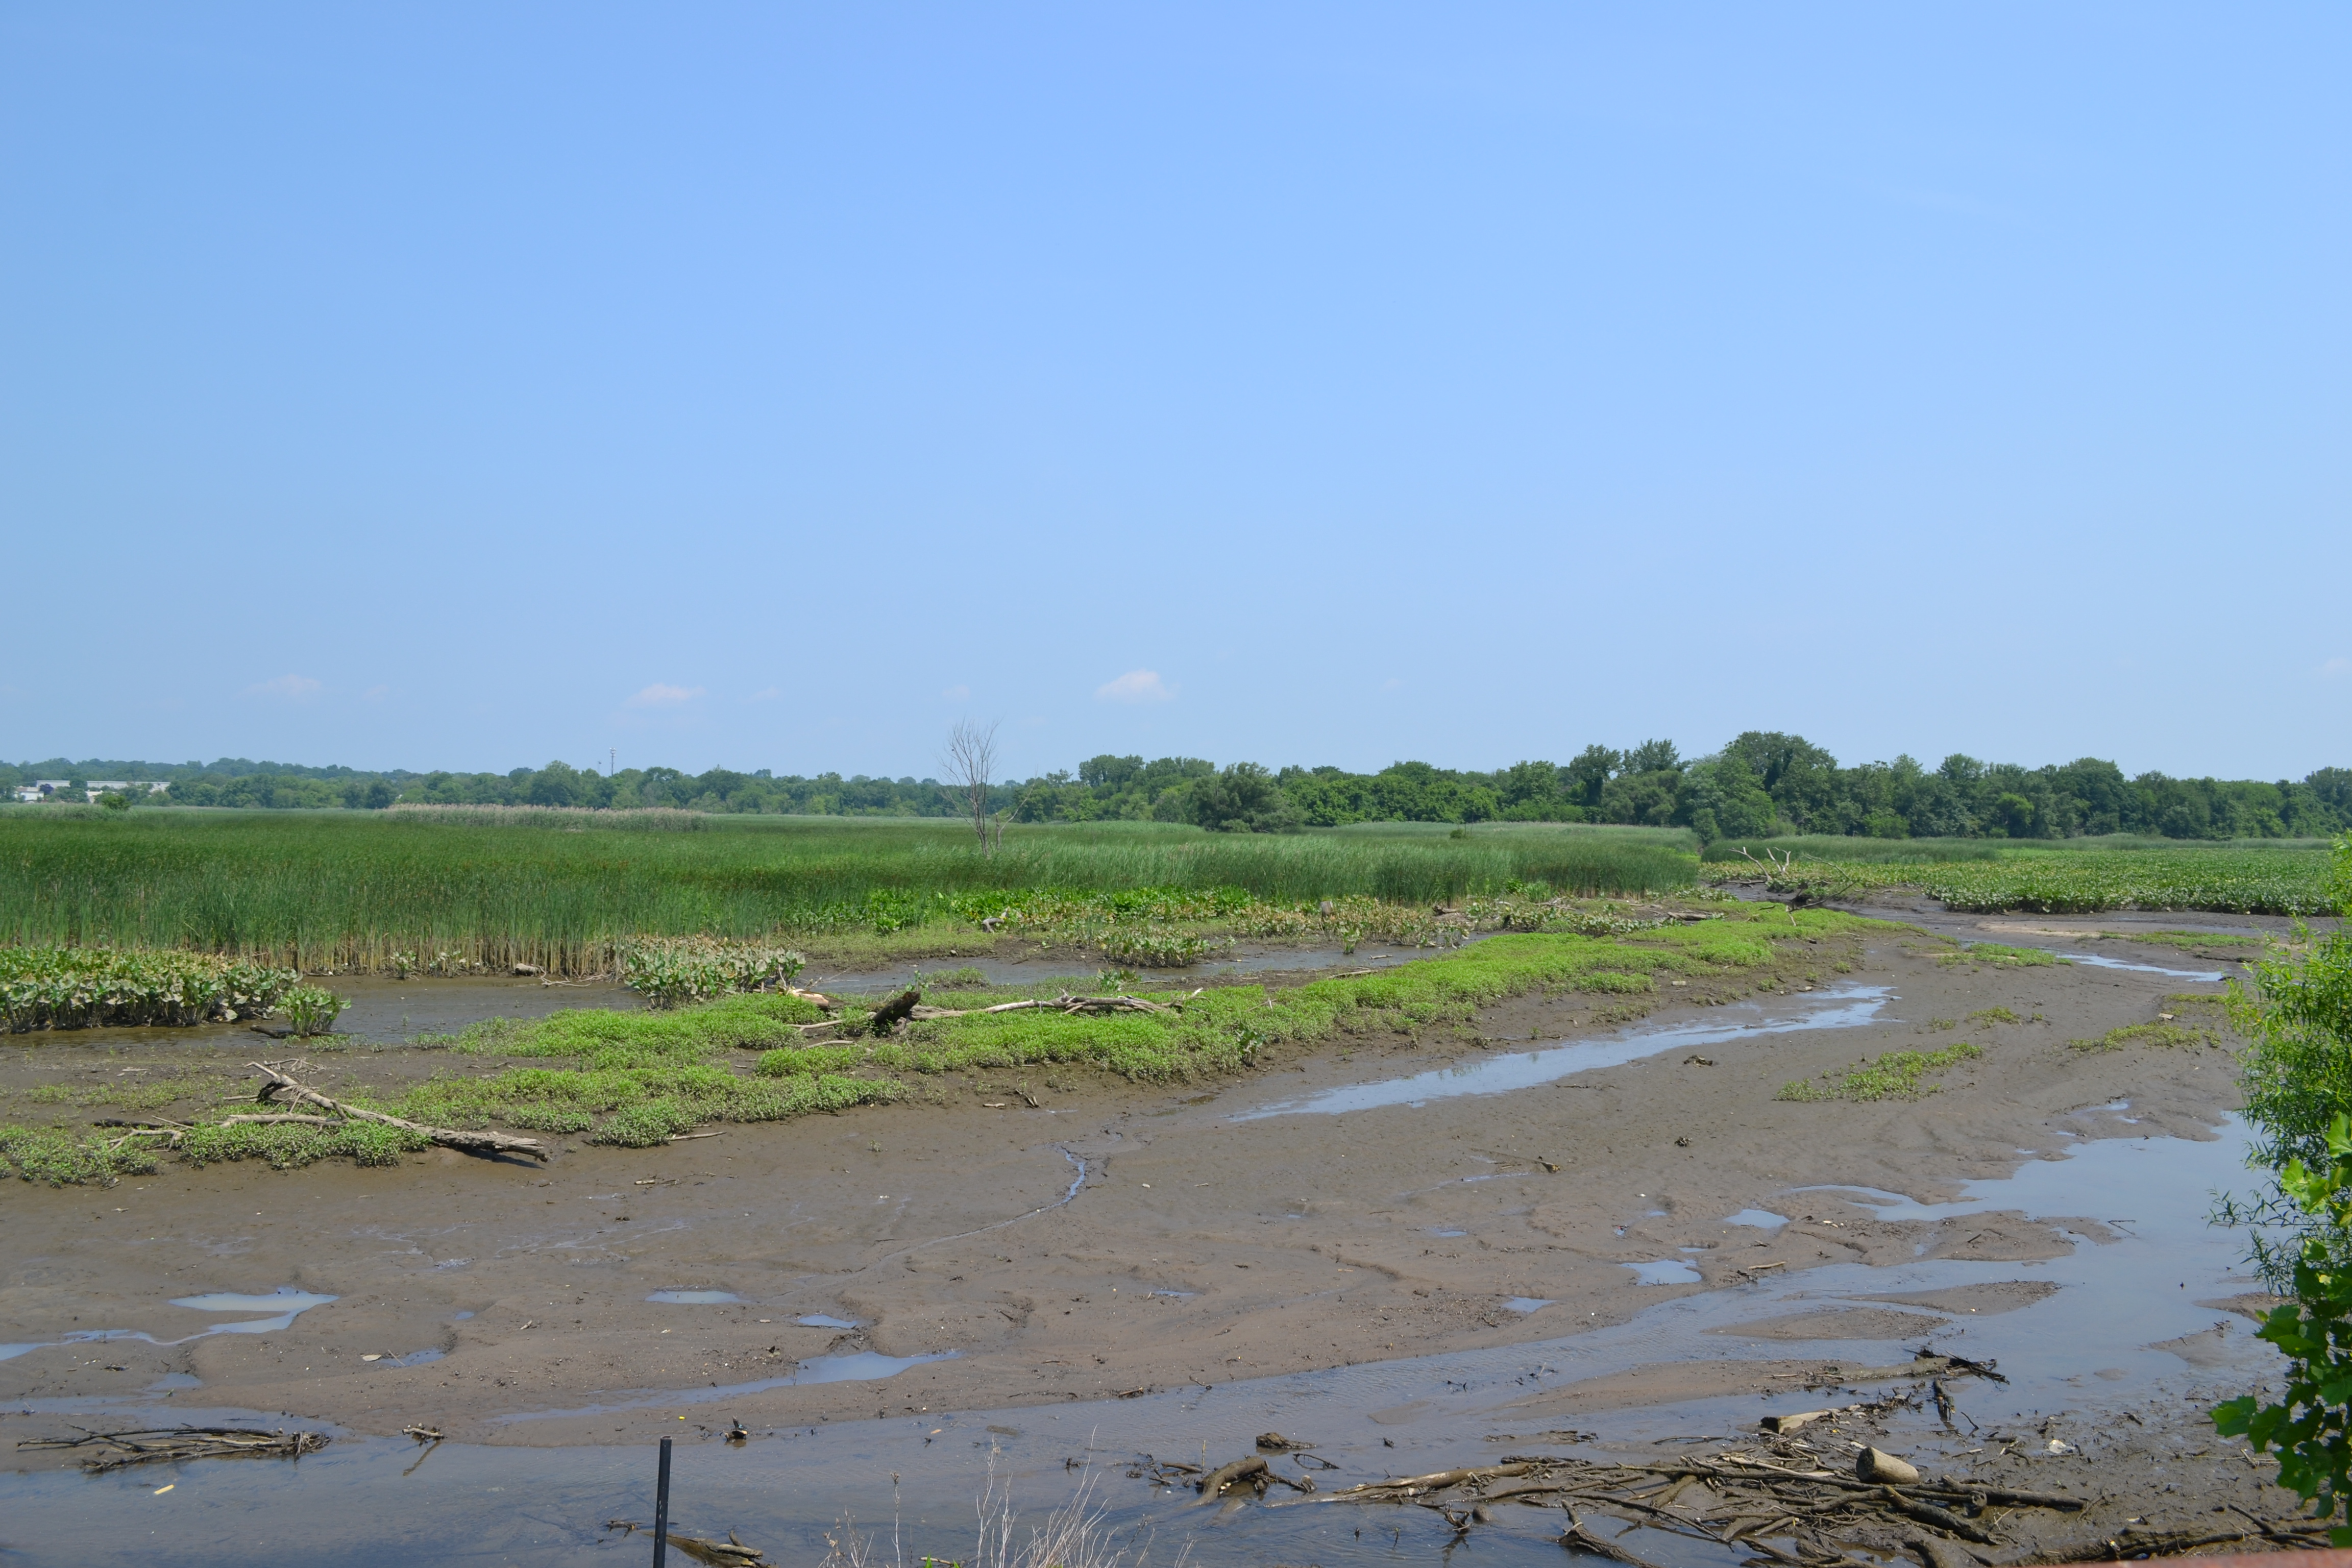 The marsh is rare in that it is both tidal and freshwater